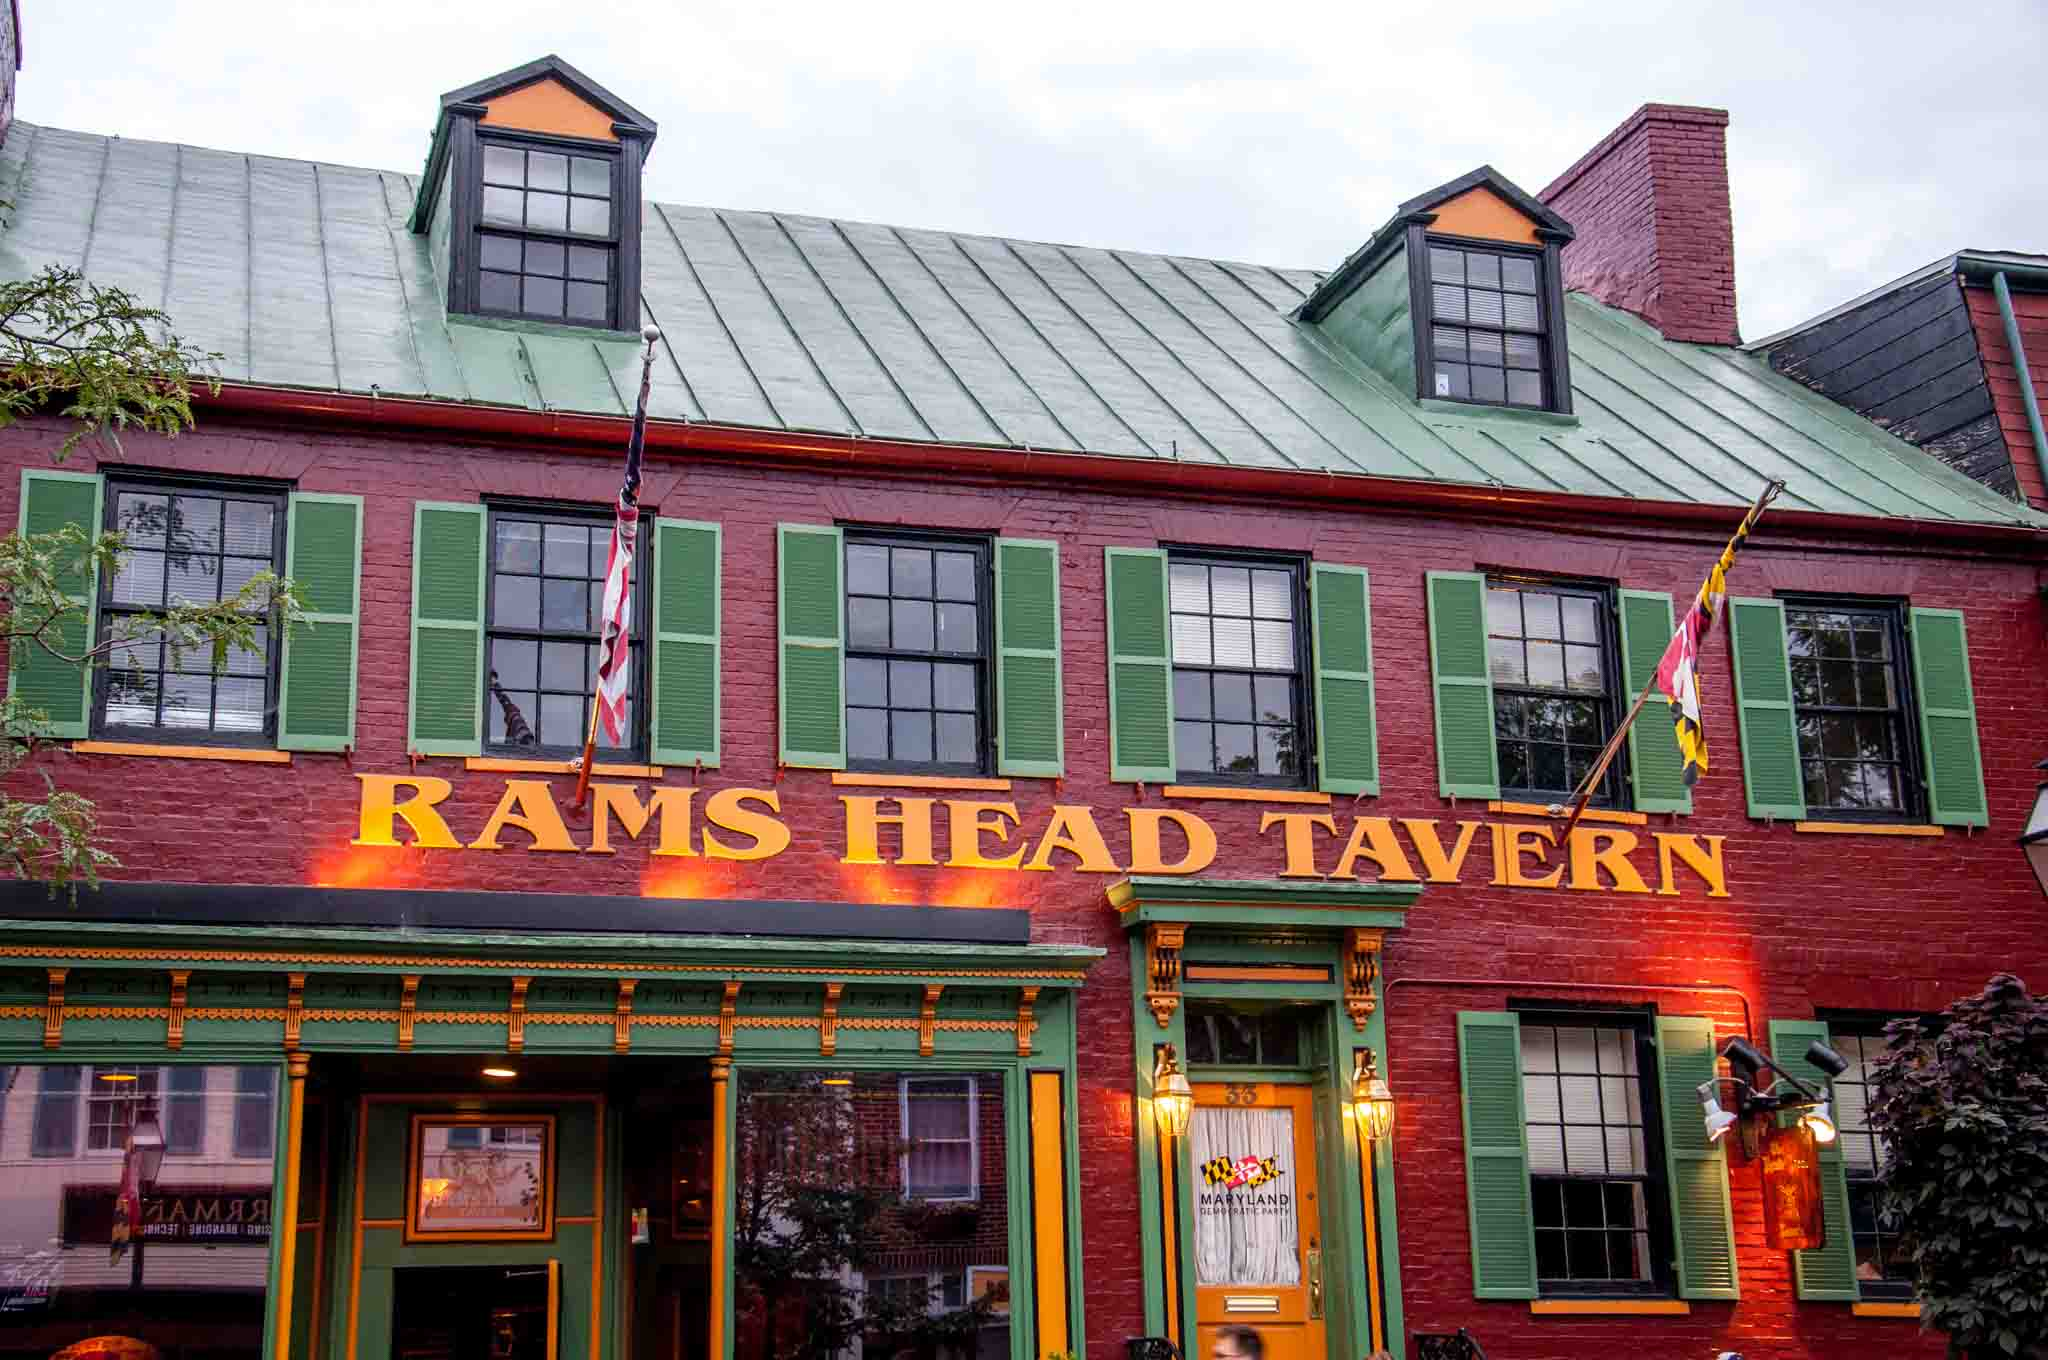 Exterior of Rams Head Tavern in downtown Annapolis